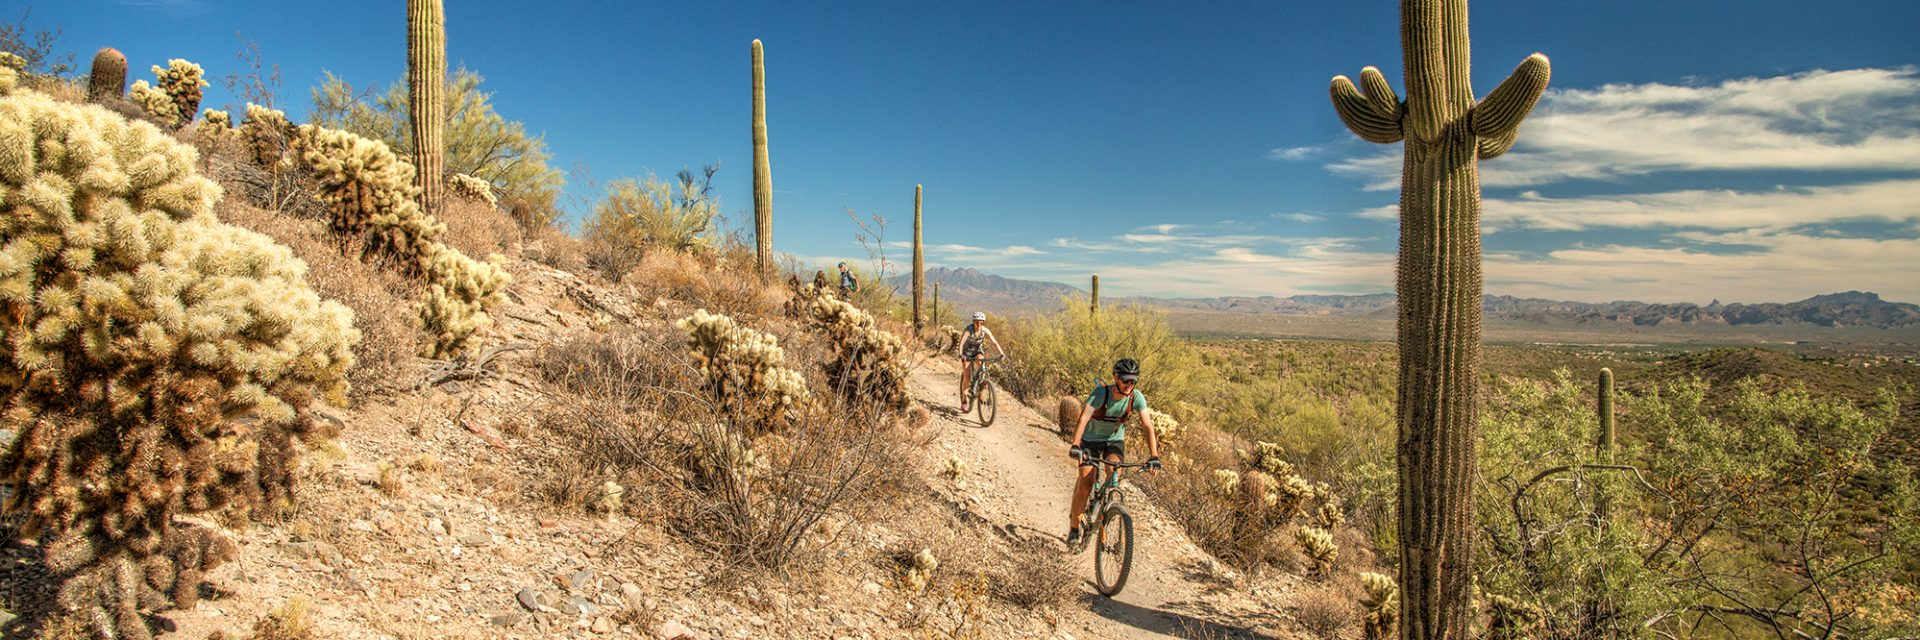 Heading down Dixie Mine Trail, McDowell Mountain Park, Arizona's Sonoran Desert guided mtb tour near Phoenix, AZ